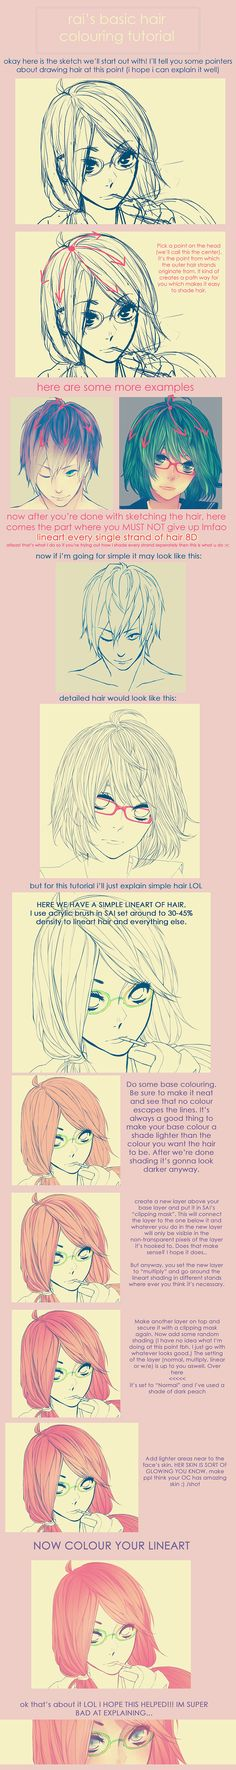 rai's hair colouring tutorial by raichuuuu.deviantart.com on @deviantART